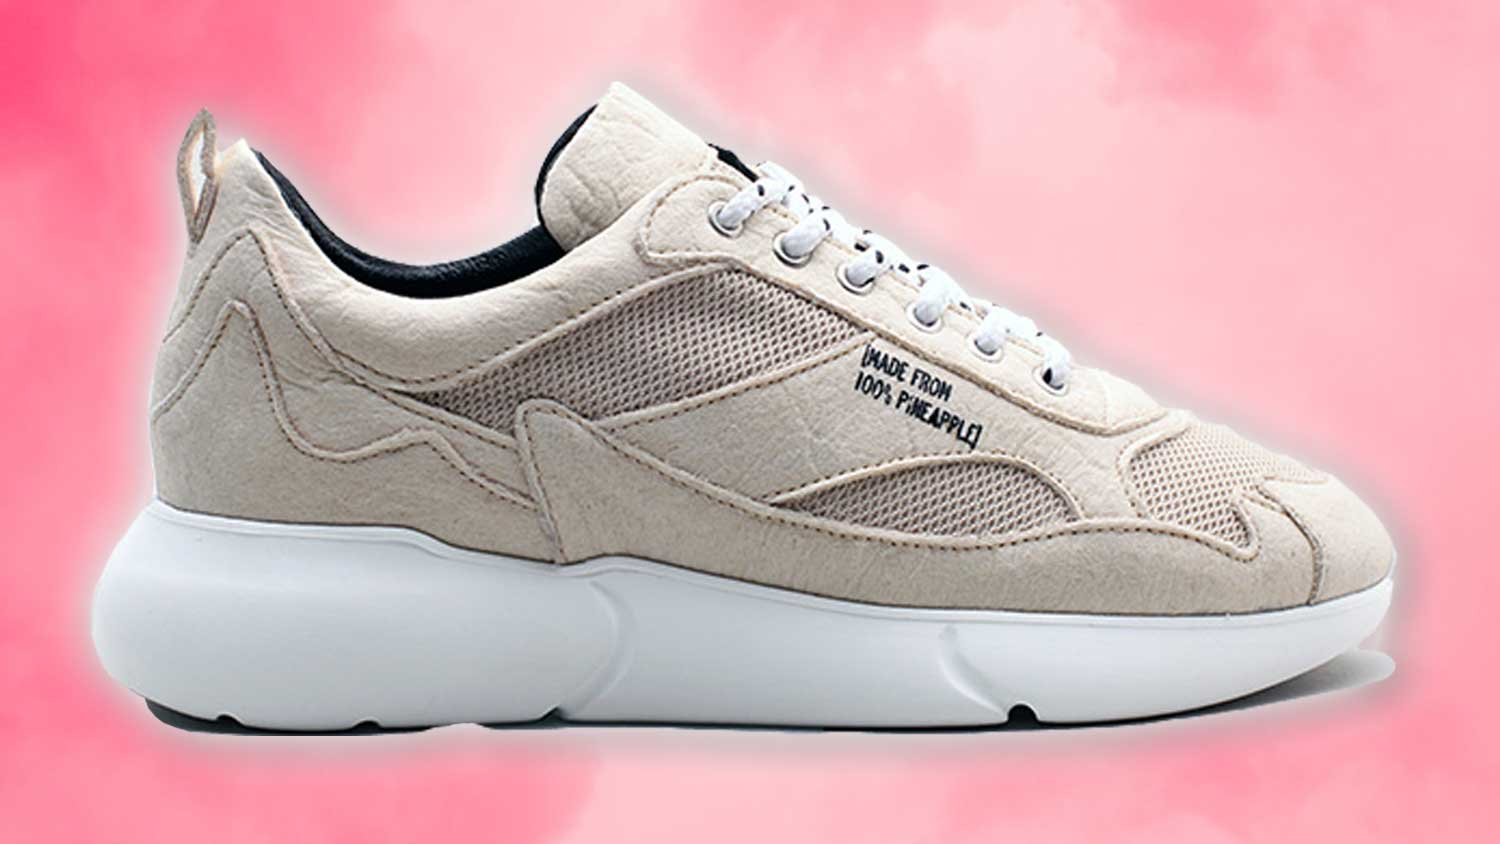 These Vegan Leather Sneakers are Made From Pineapples   LIVEKINDLY